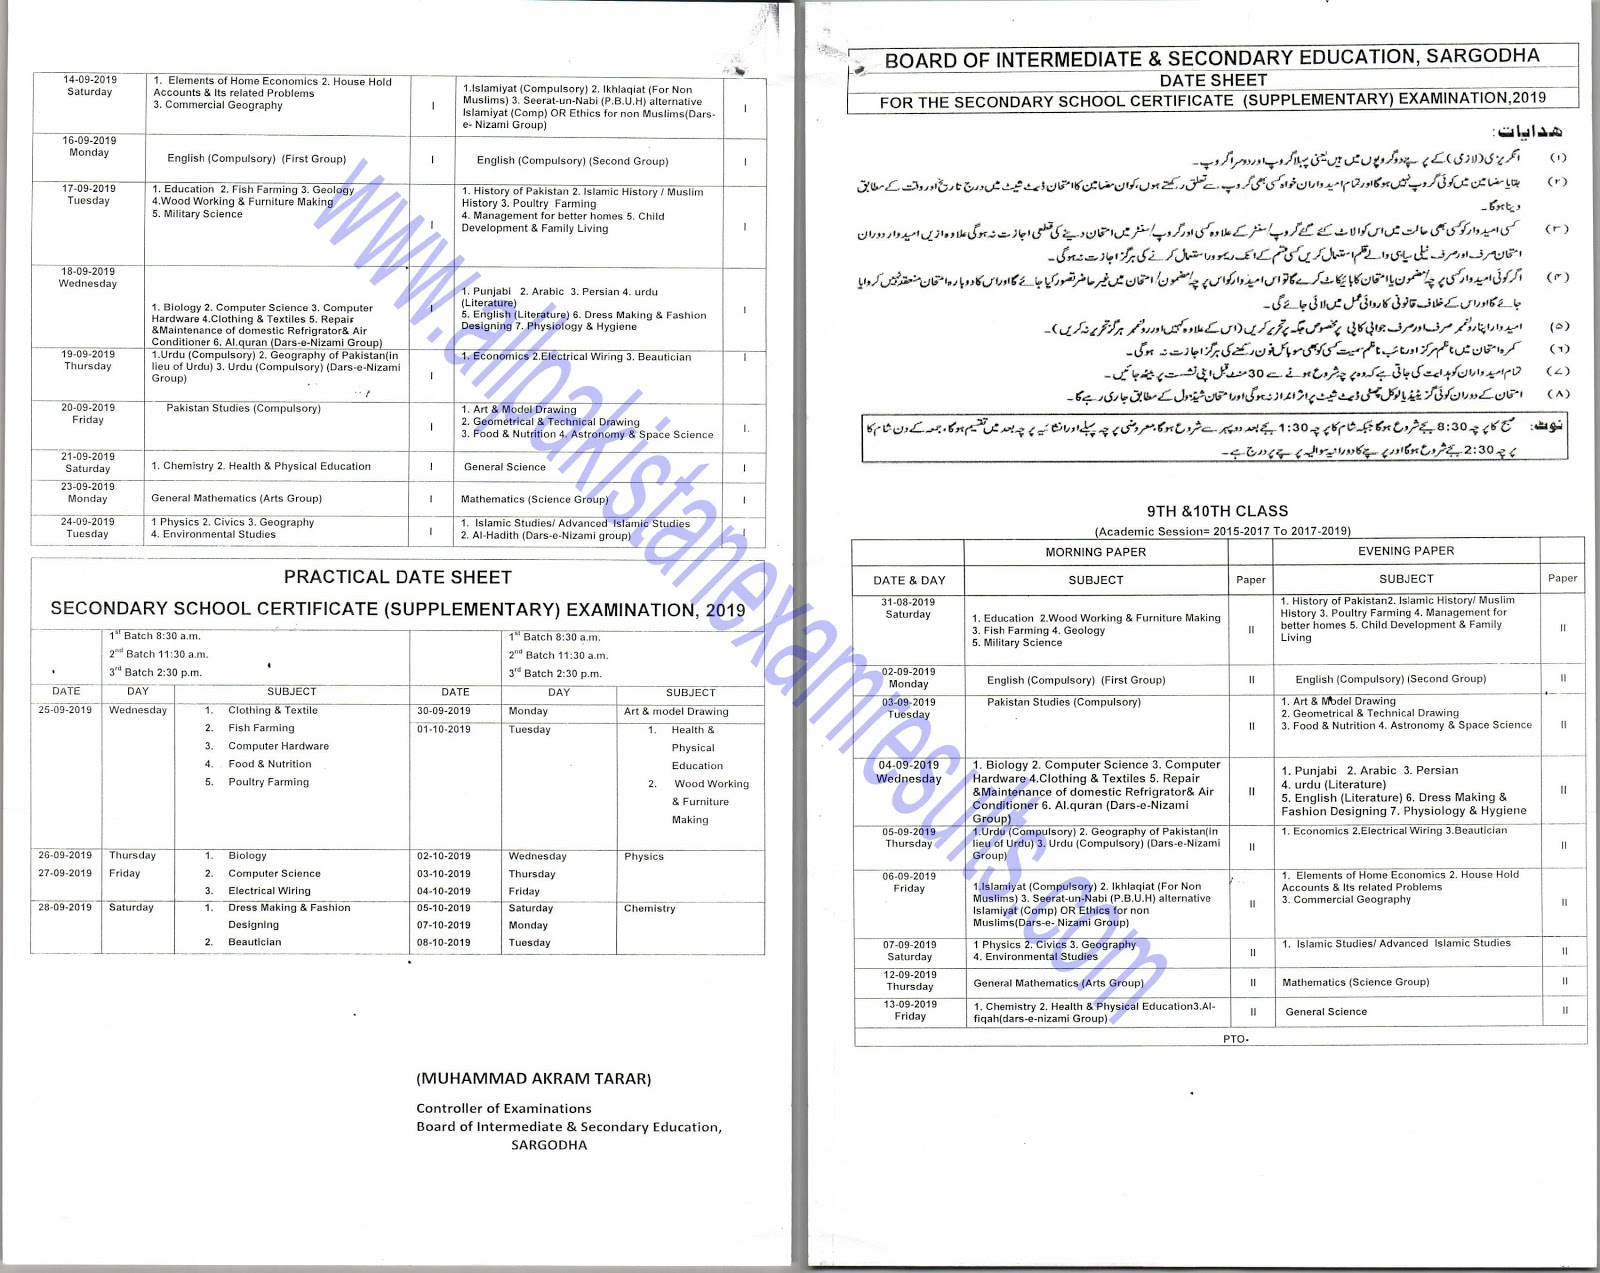 Date Sheet For SSC Supplementary Sargodha Board 2019